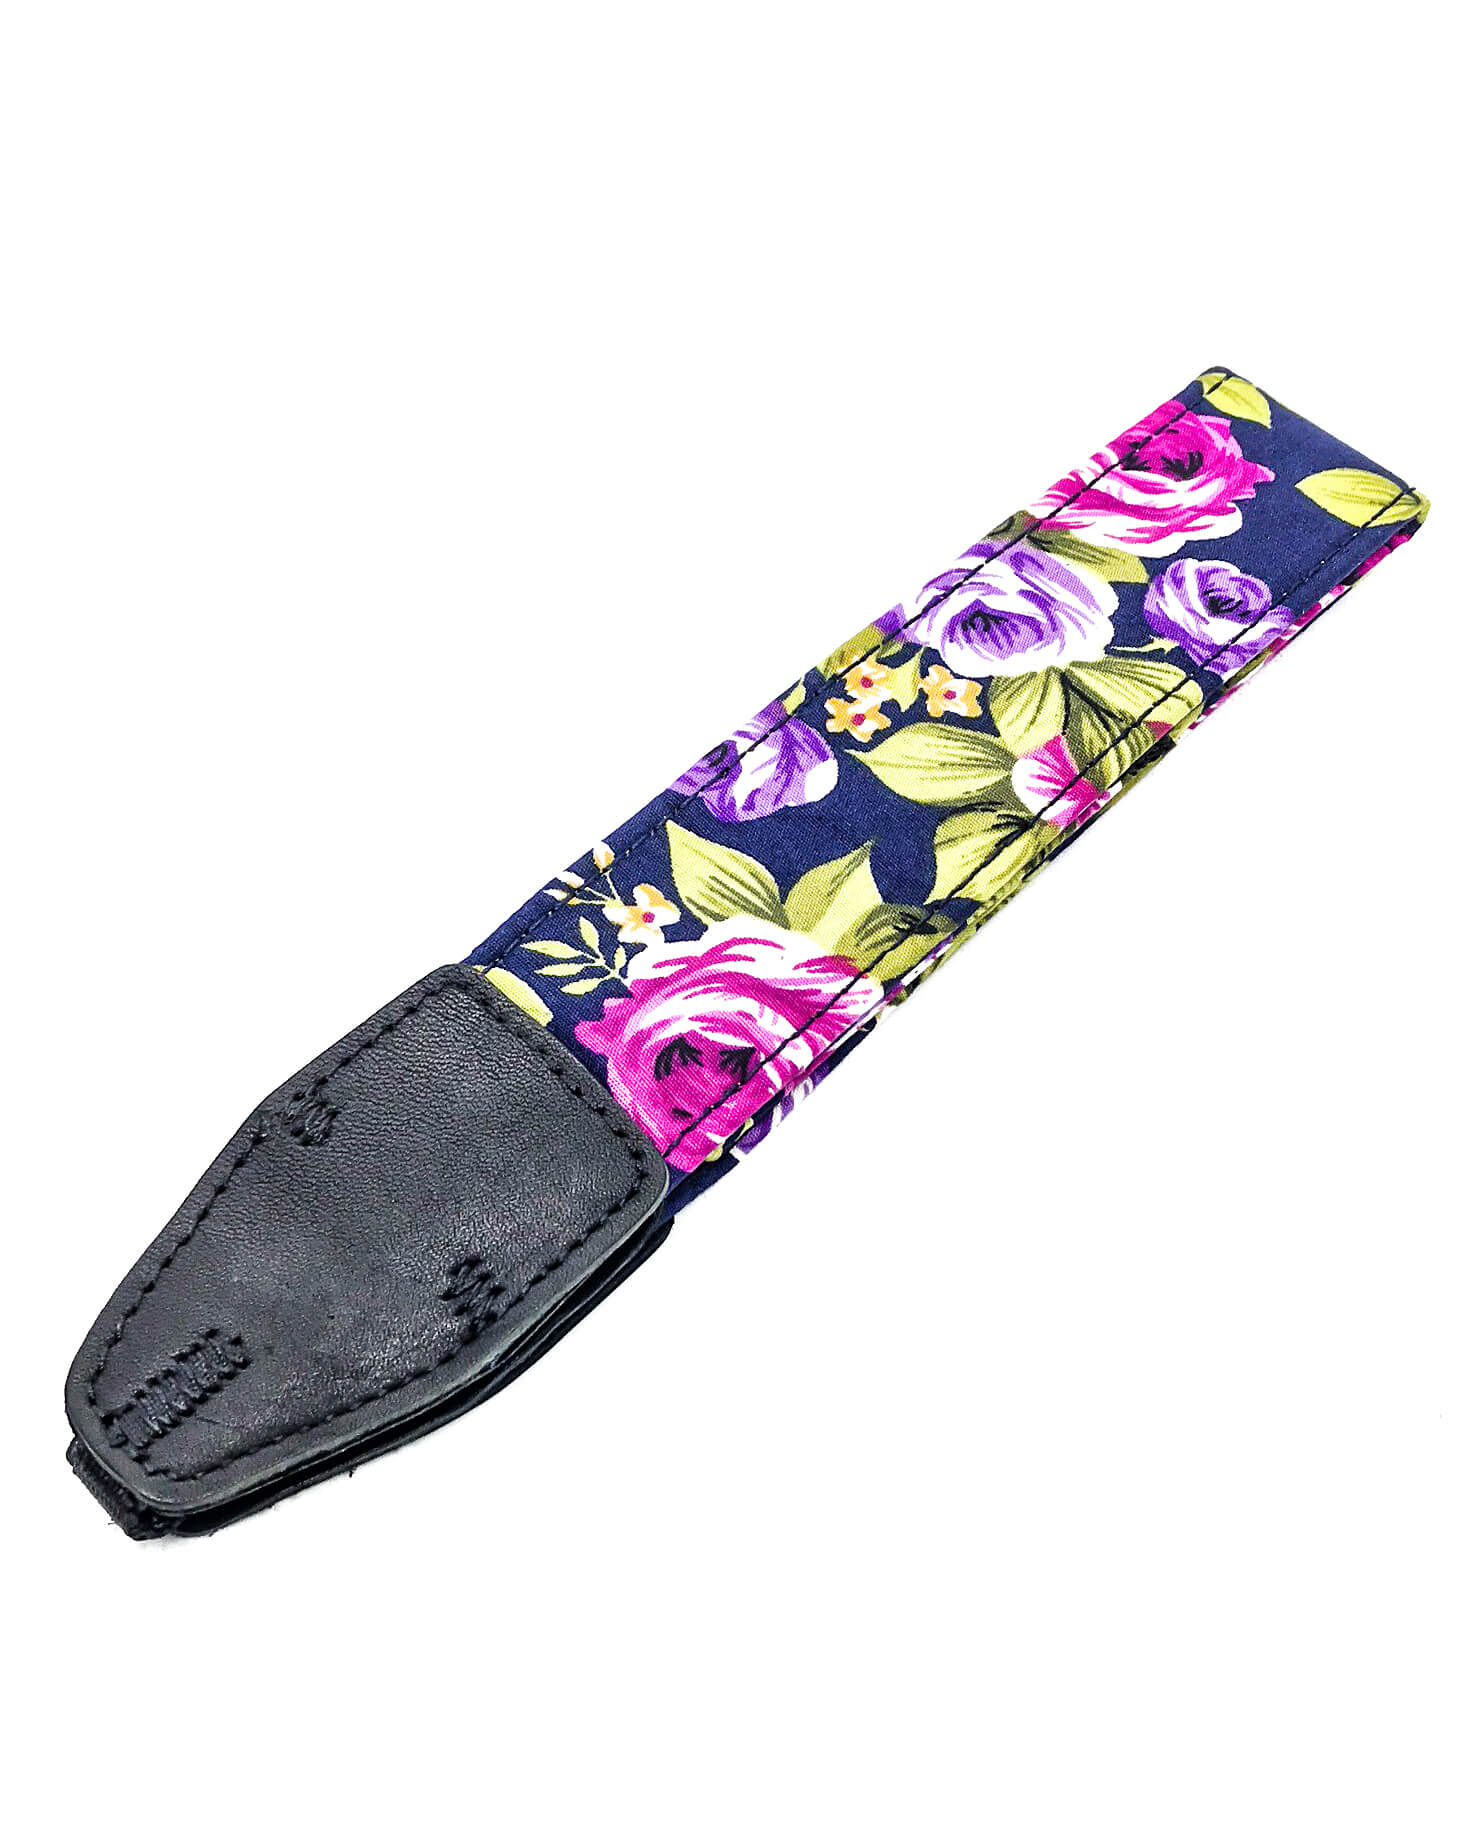 Floral camera strap on white background